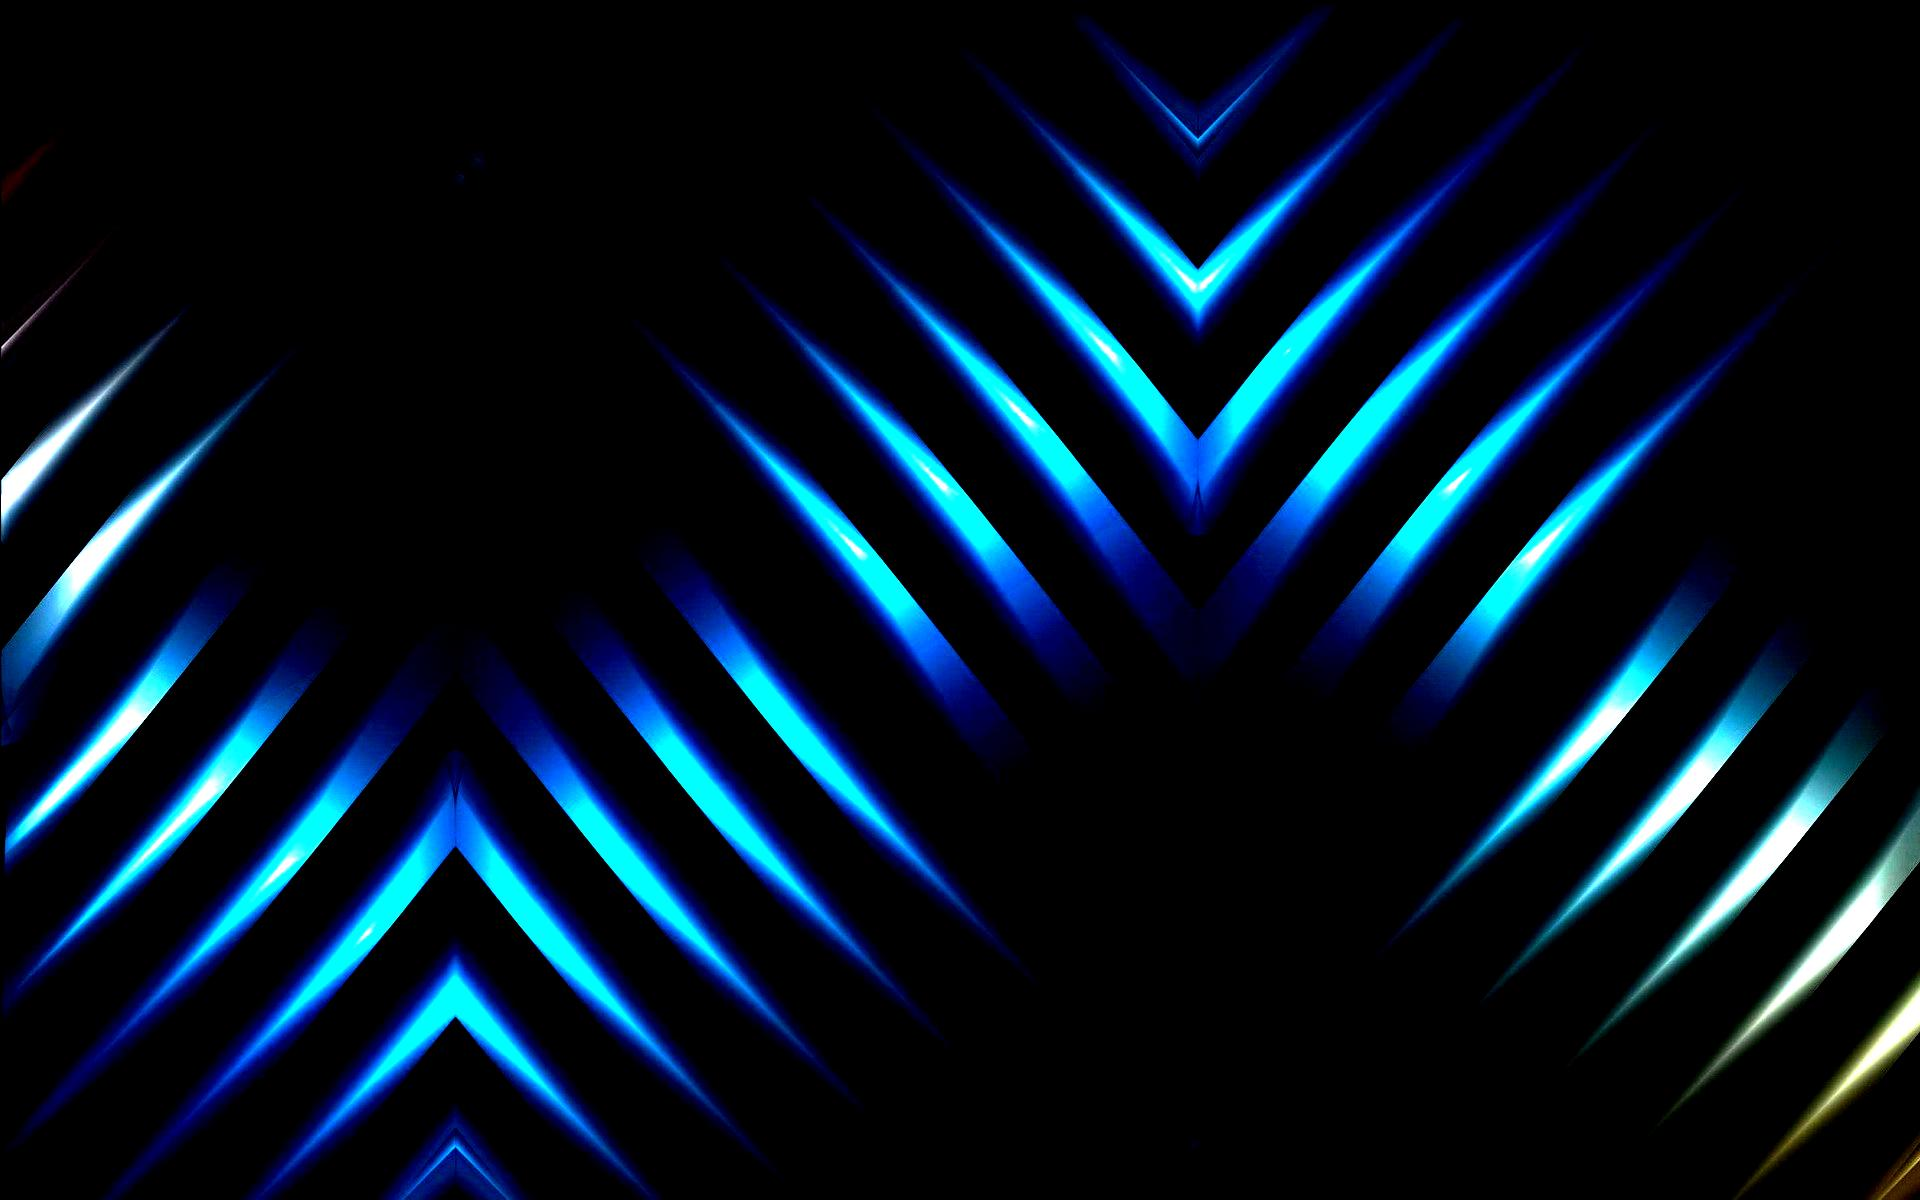 30 wallpapers perfect for AMOLED screens 1920x1200